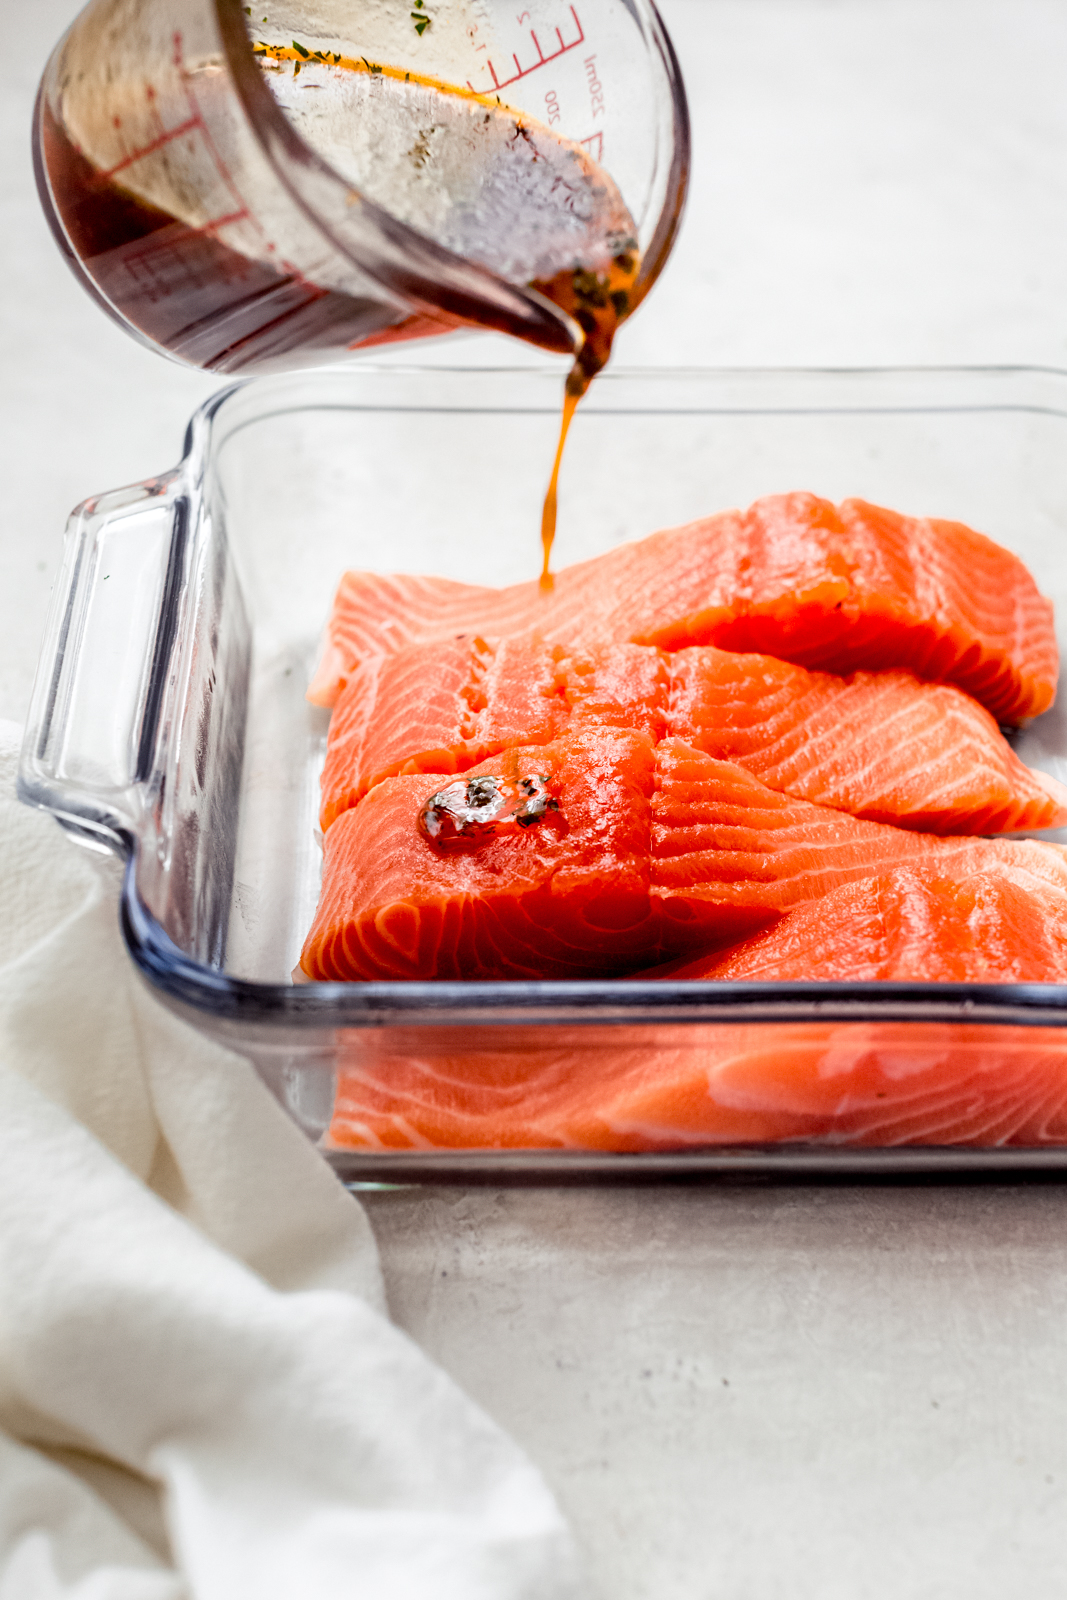 pouring marinade on salmon filets in glass dish